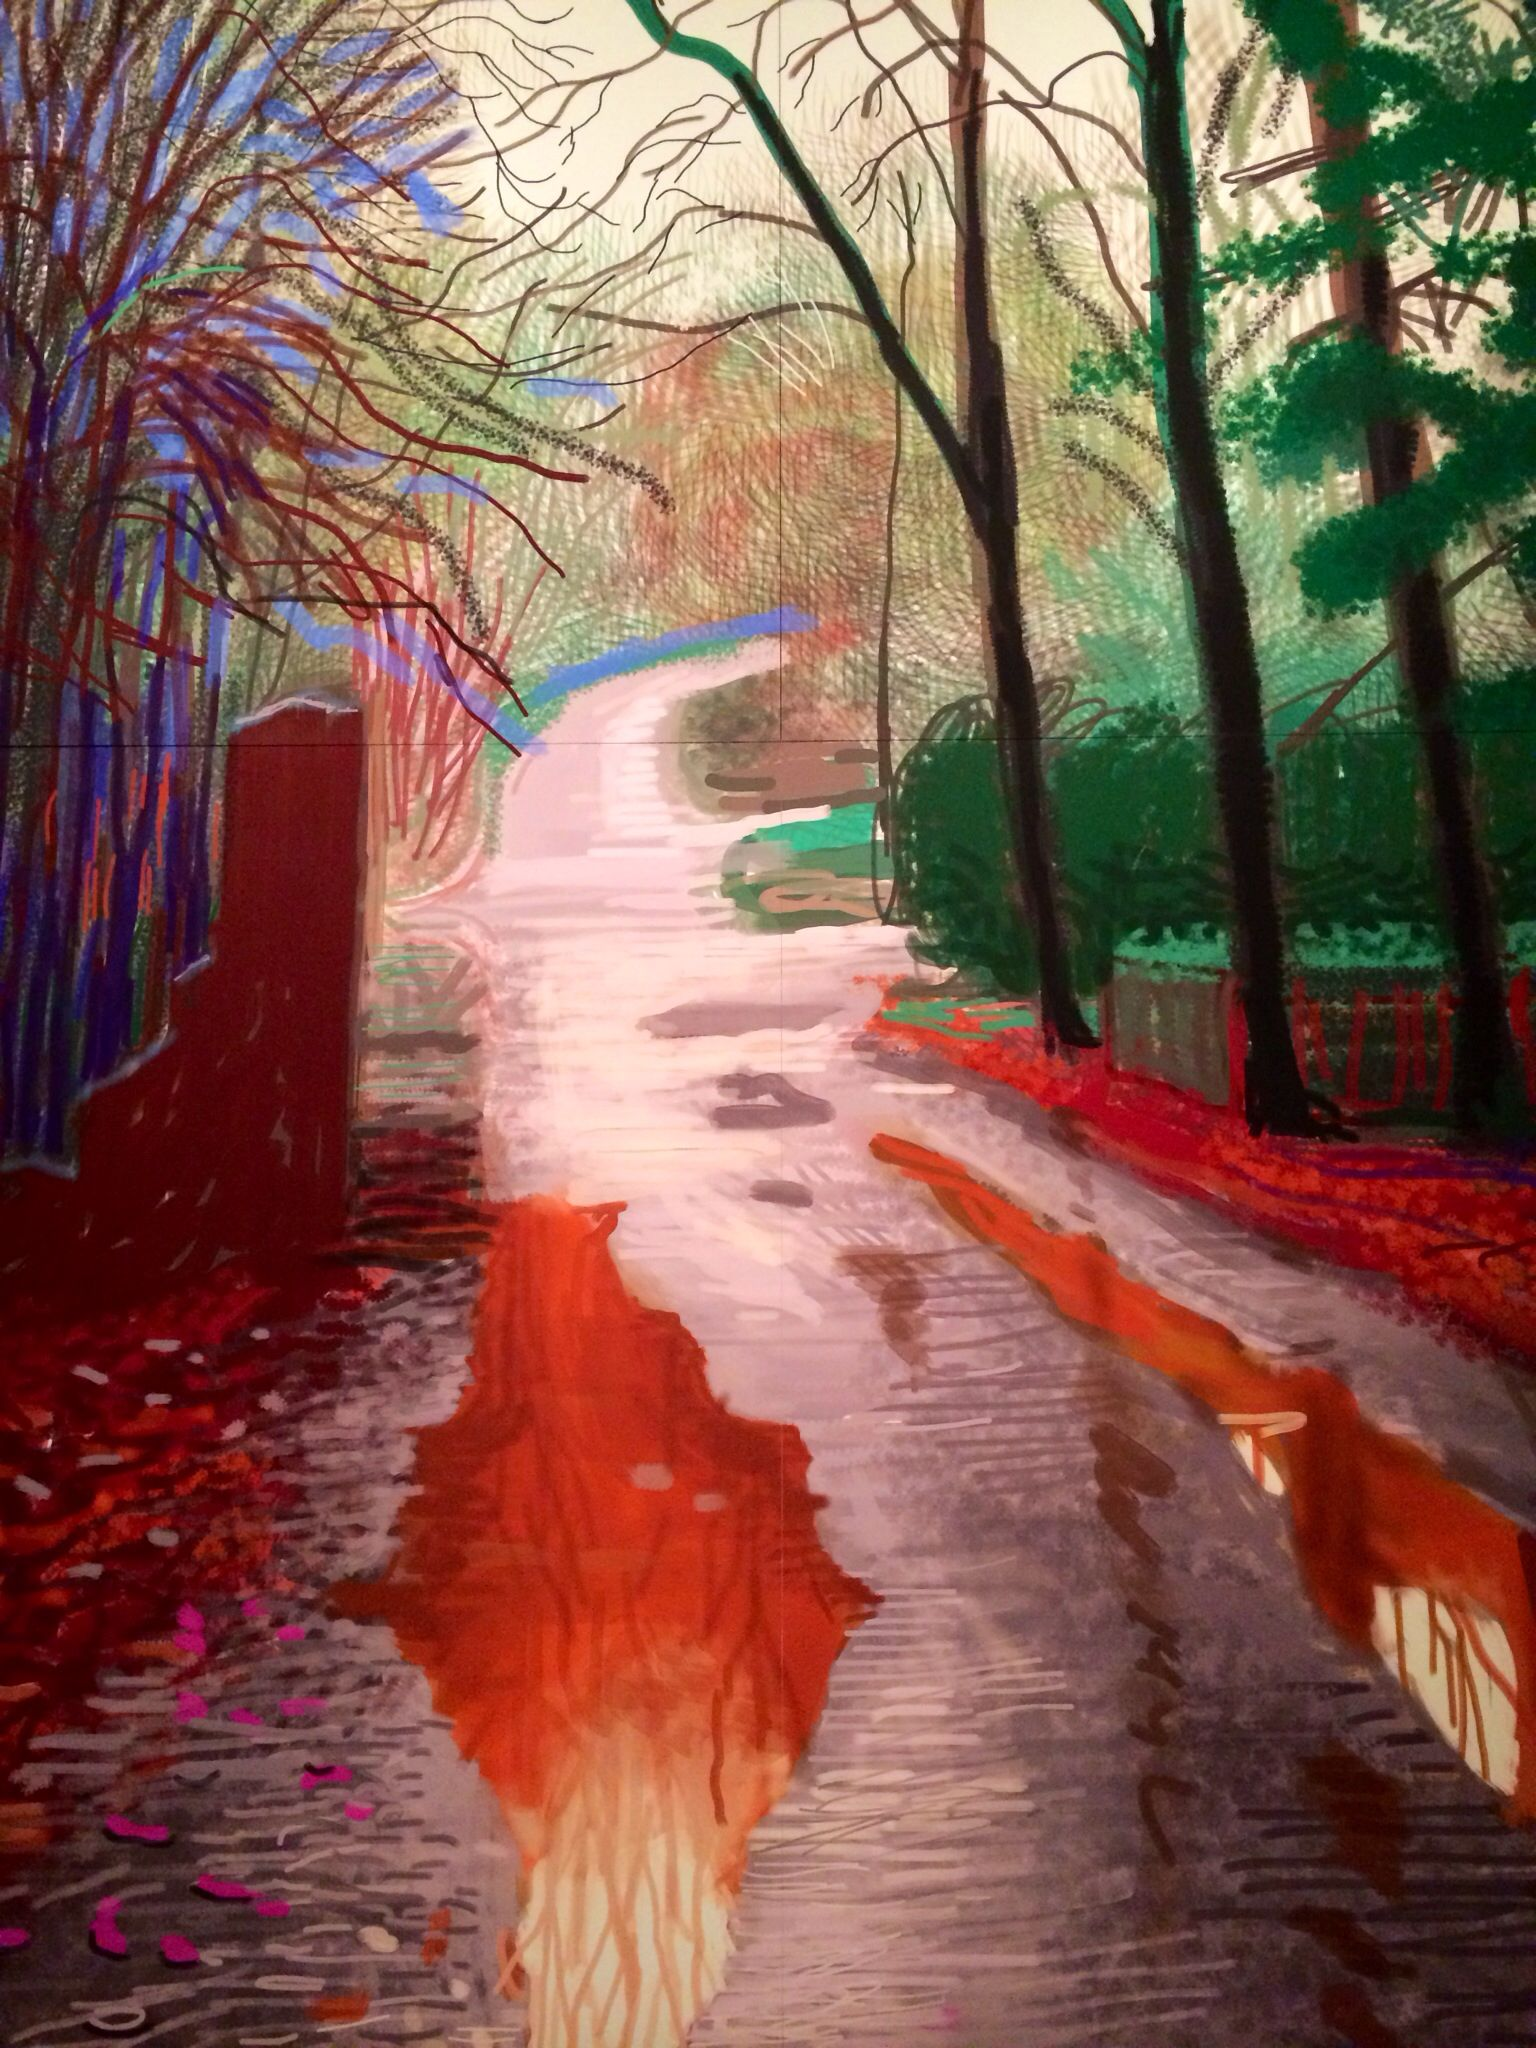 david hockney After his monumental landscape exhibition at the guggenheim museum bilbao in 2012, david hockney turned away from painting and from his yorkshire home and went back to los angeles.